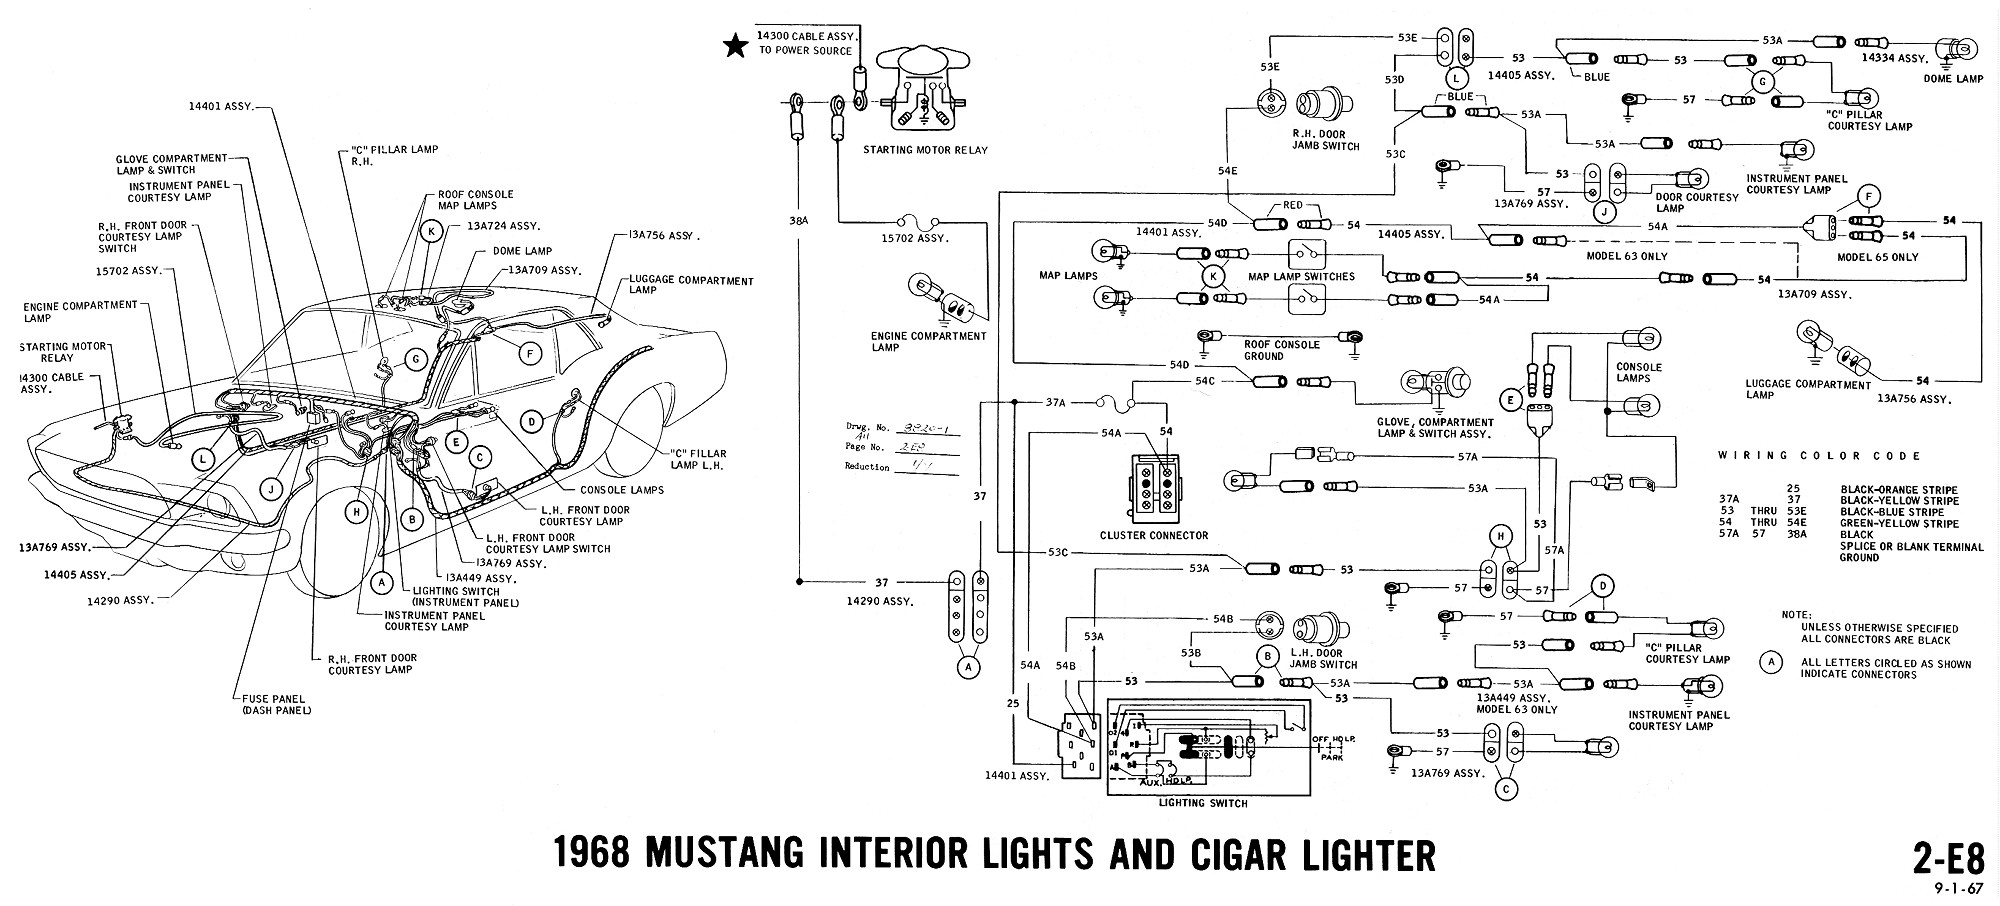 1968 mustang wiring diagram interior lights cigar lighter 1968 mustang wiring diagrams and vacuum schematics average joe mustang wiring harness diagram at crackthecode.co